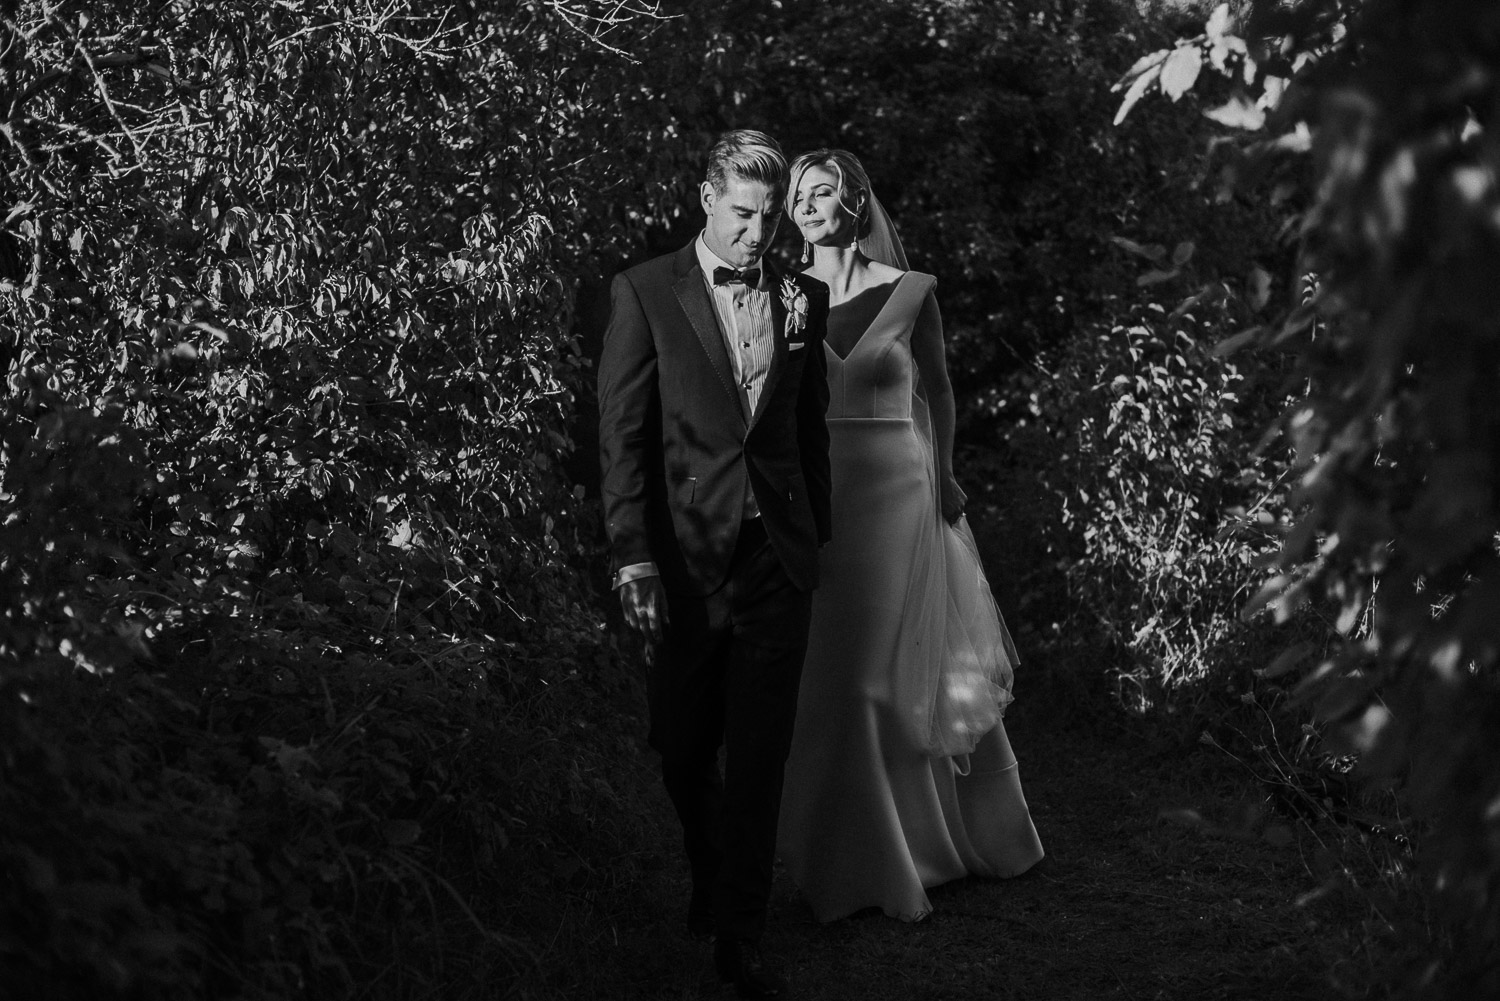 dordogne_eymet_wedding_france_katy_webb_photography_france_UK93